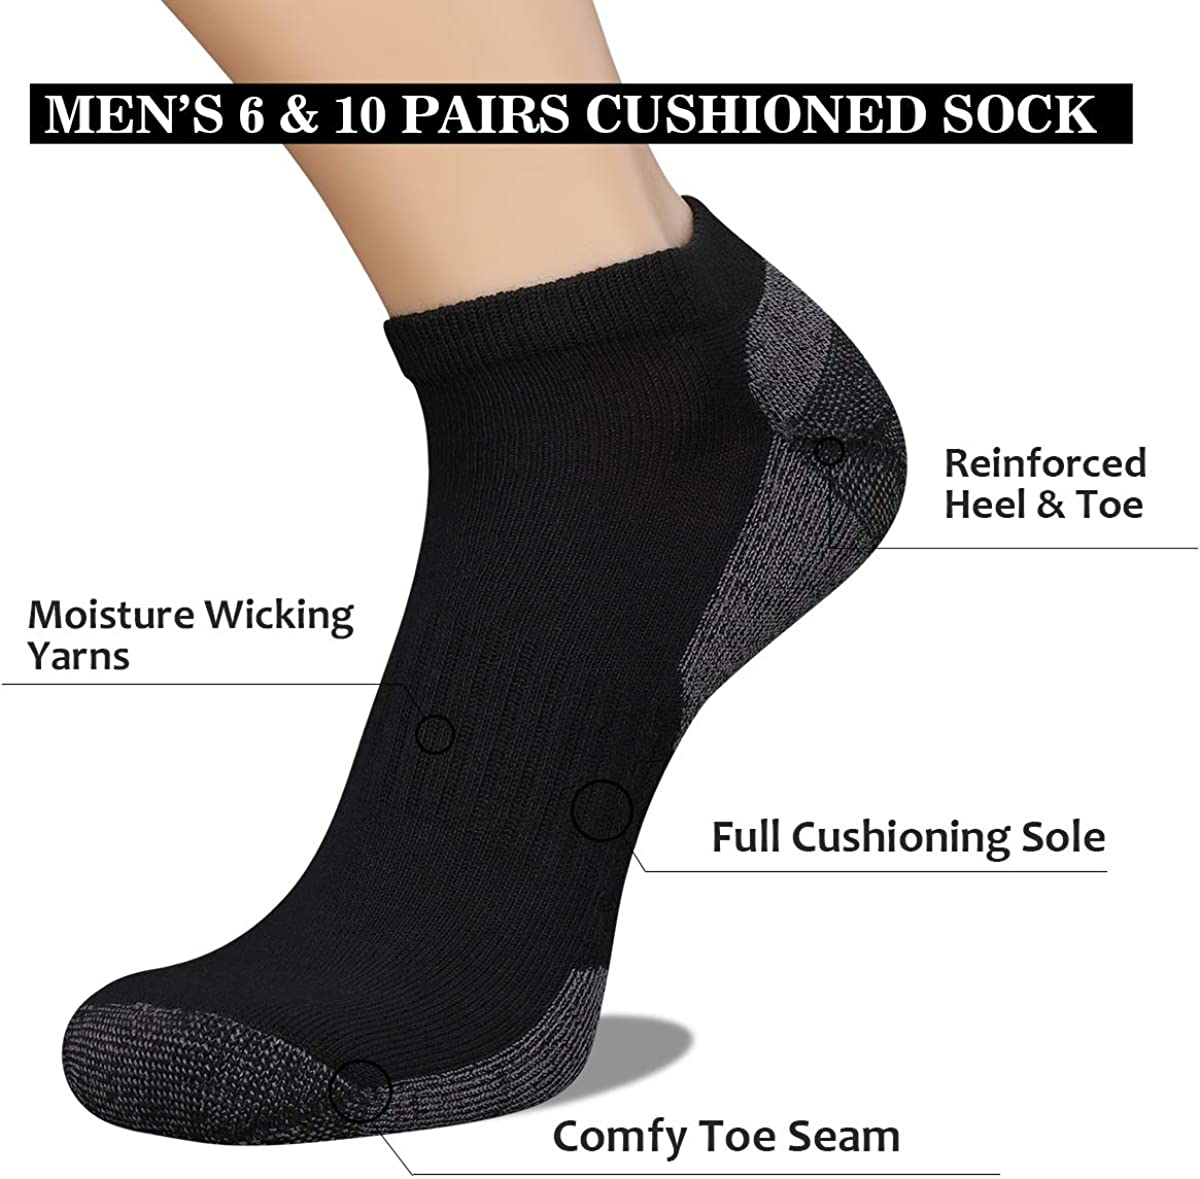 12 Pack TopSTEP Mens Patterned Low Cut//No Show Athletic Performance Socks with Cushion Sole Sock Size 10-13